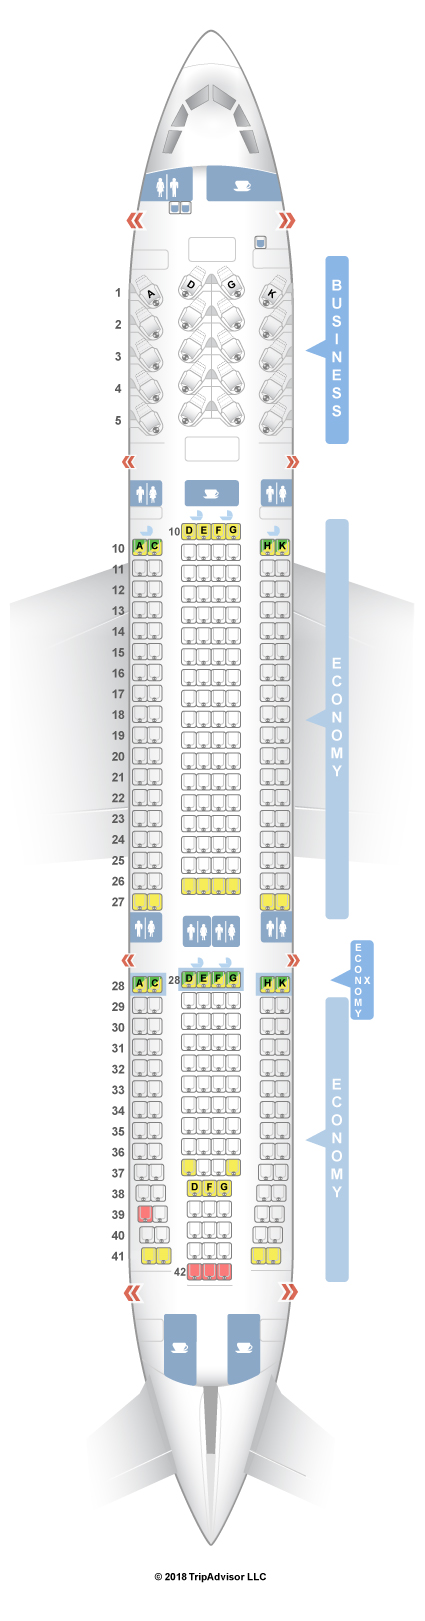 Delta A Seat Map on